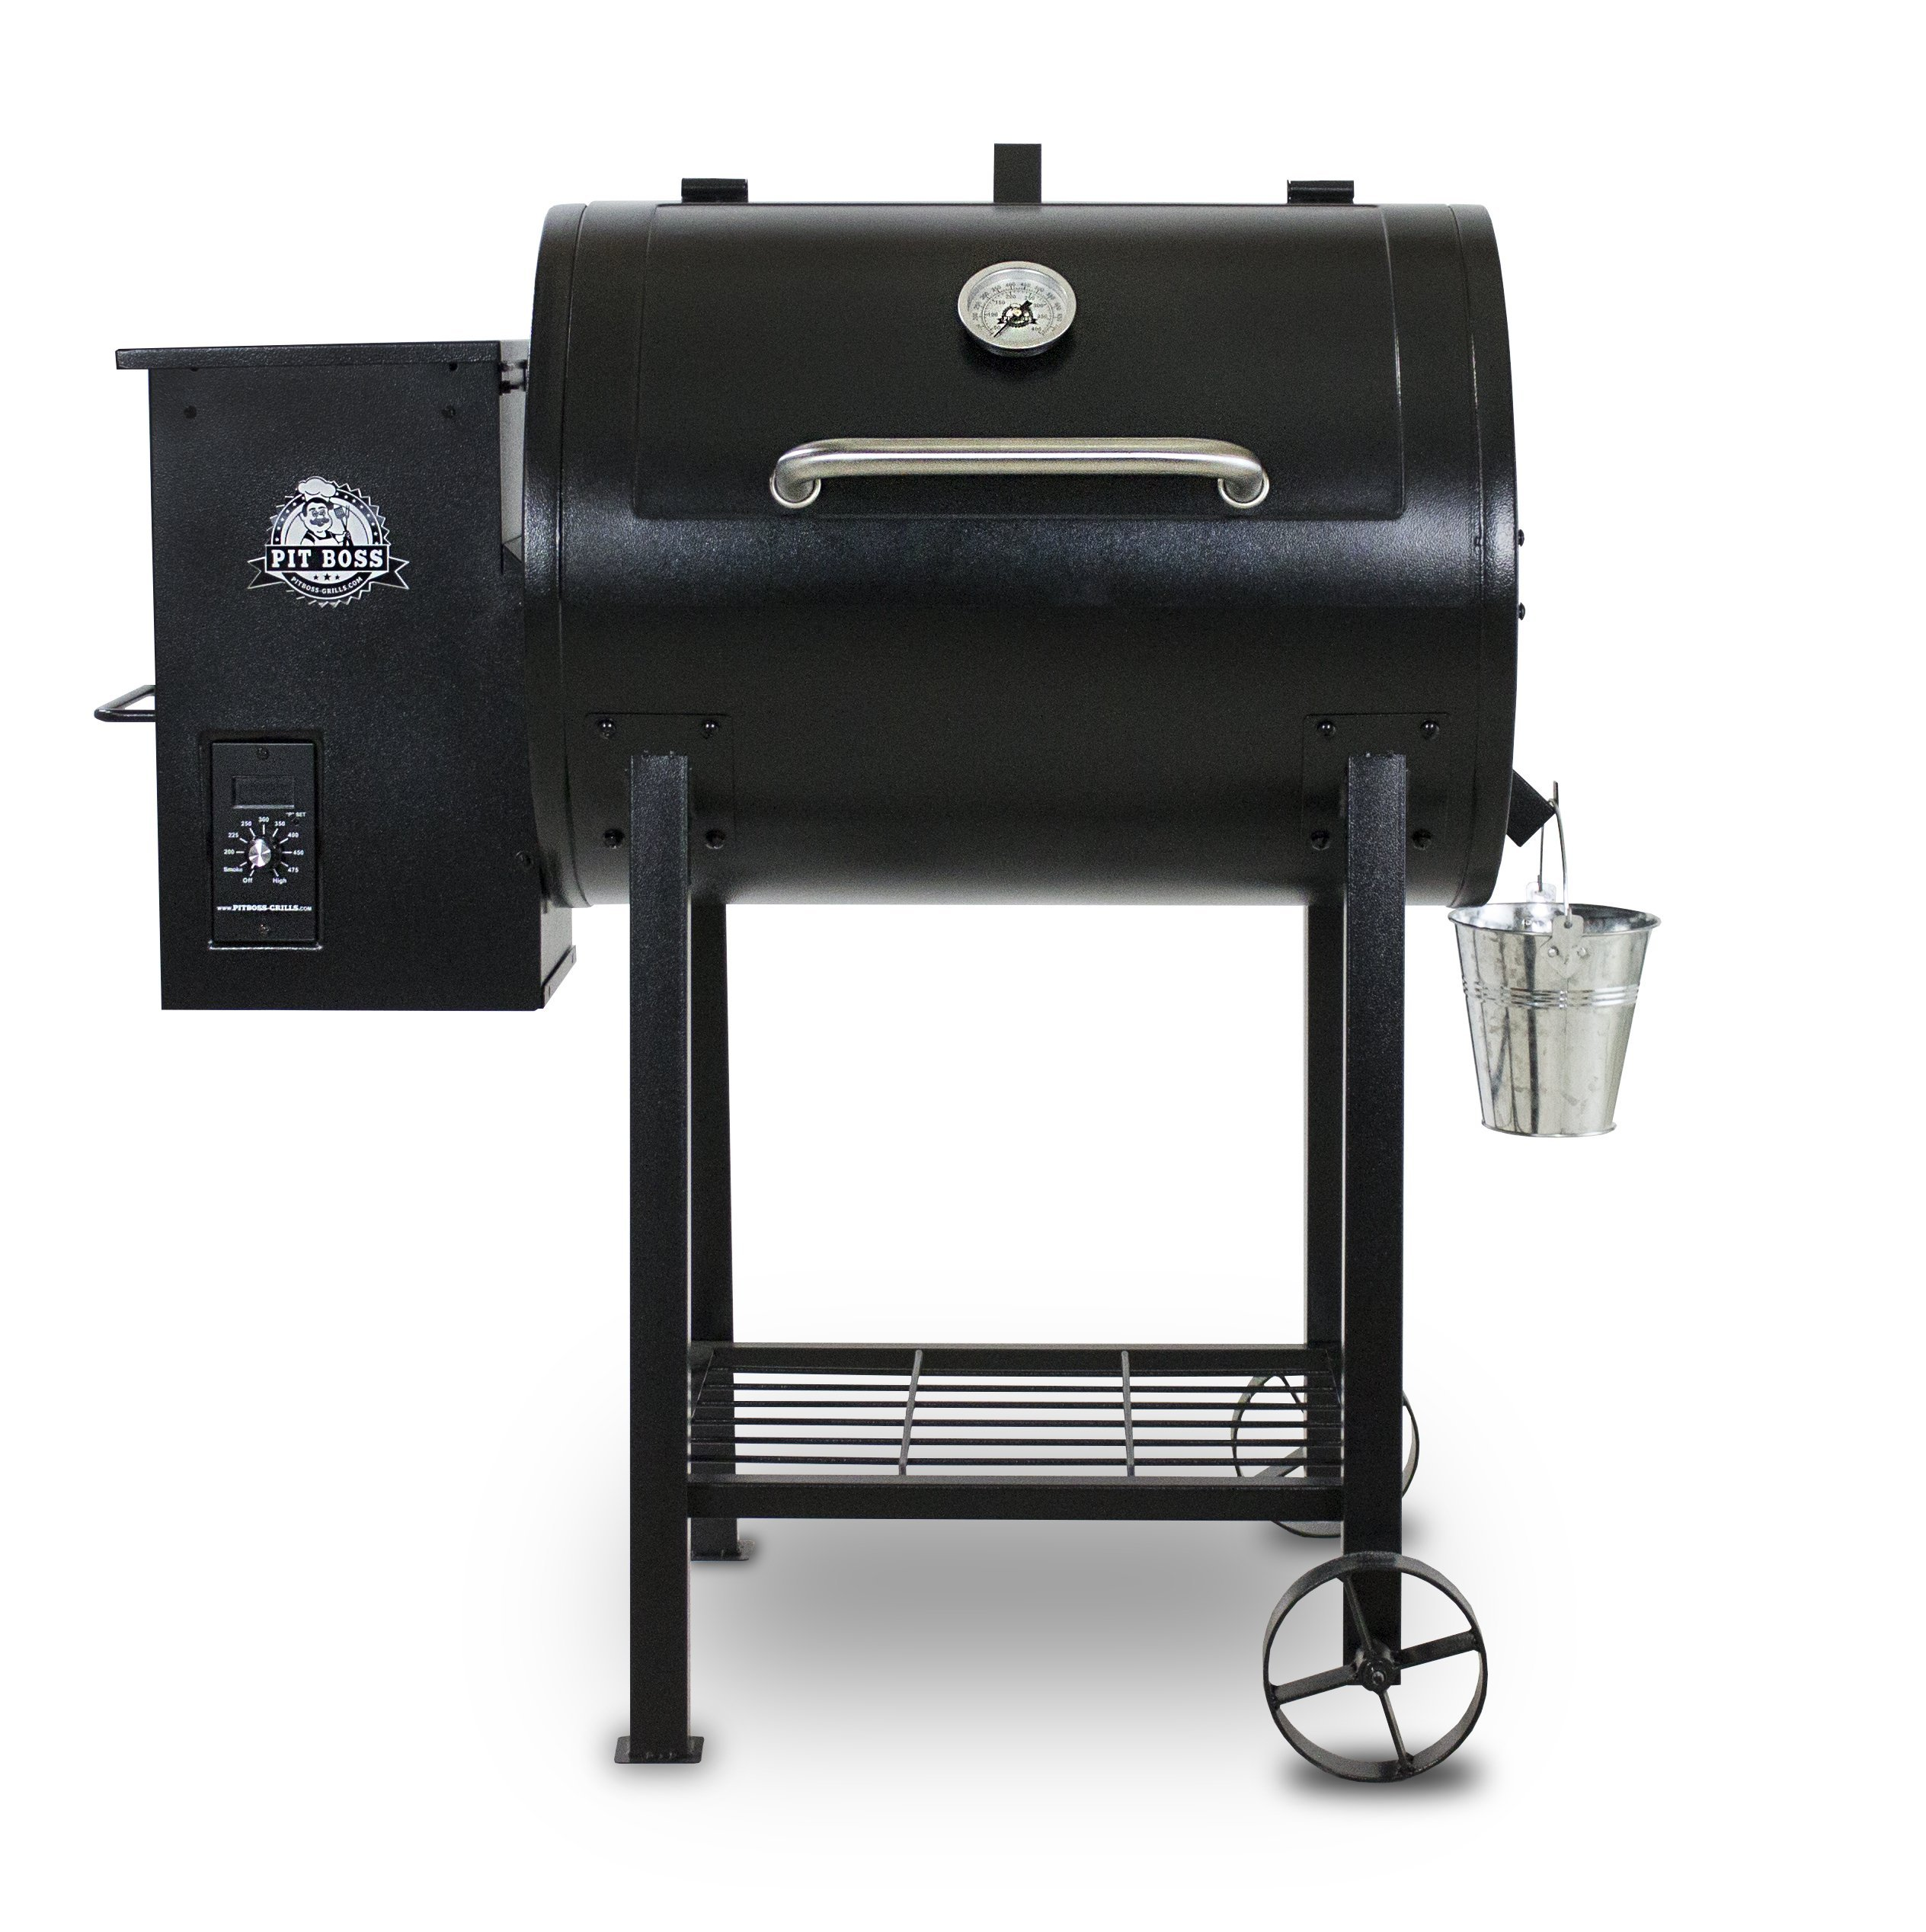 Pit Boss 700FB Pellet Grill, 700 sq. in. by PIT BOSS